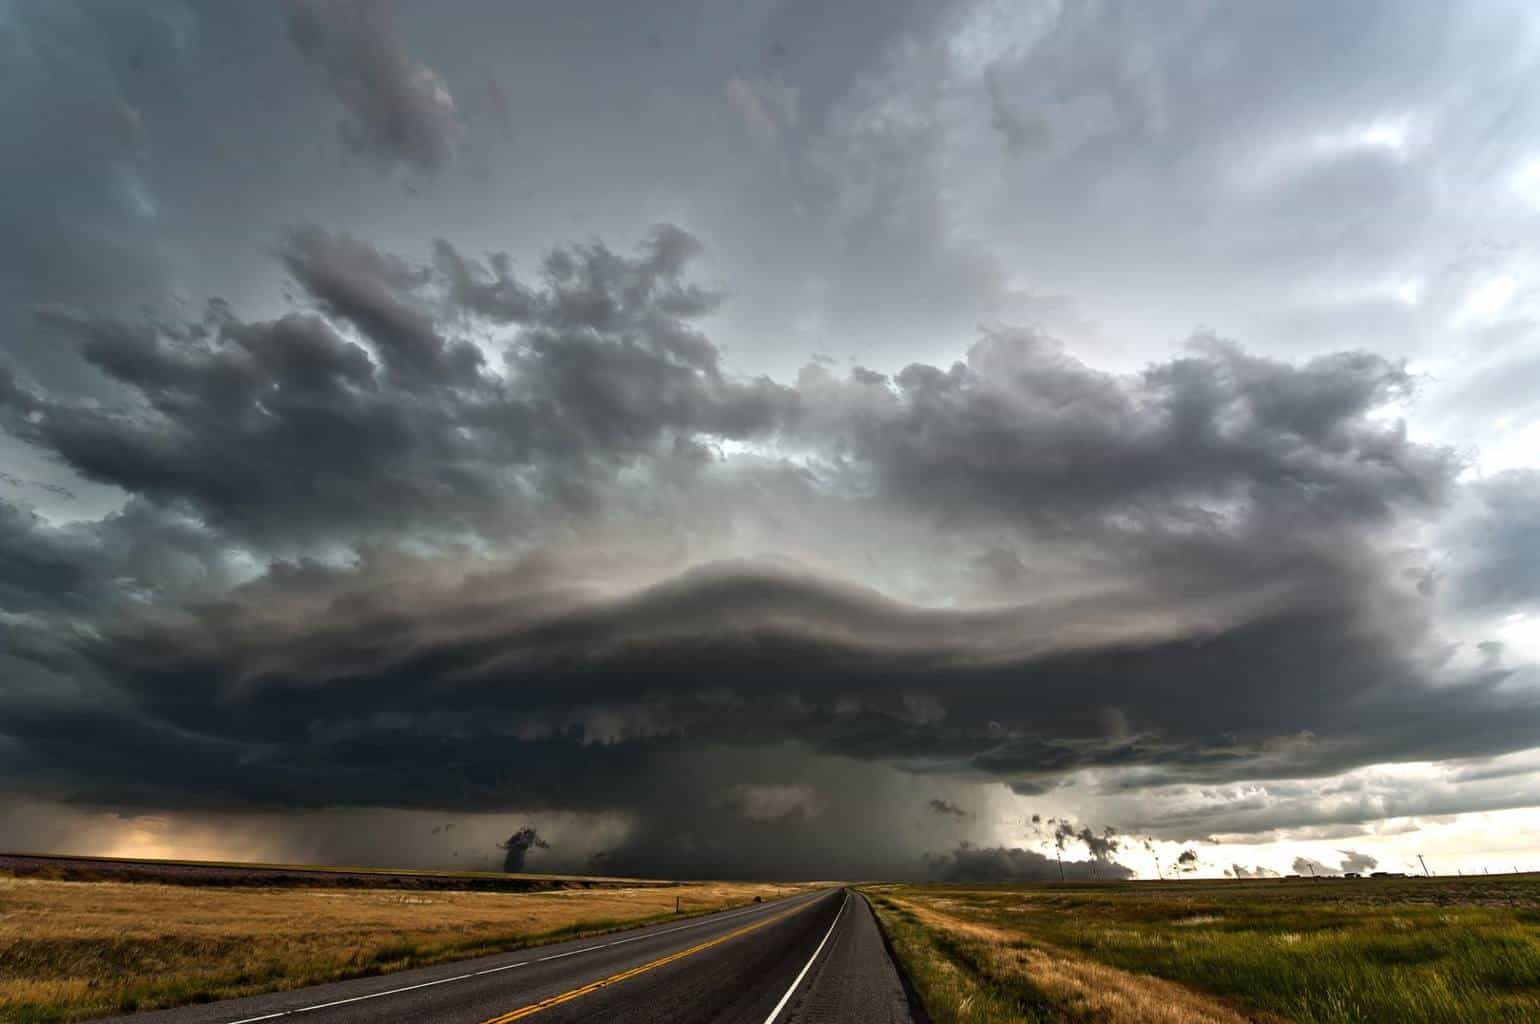 July 10, 2013 Akron, CO Severe warned storm west of town. This storm didn't last long and produced quarter sized hail and winds over 60 mph.